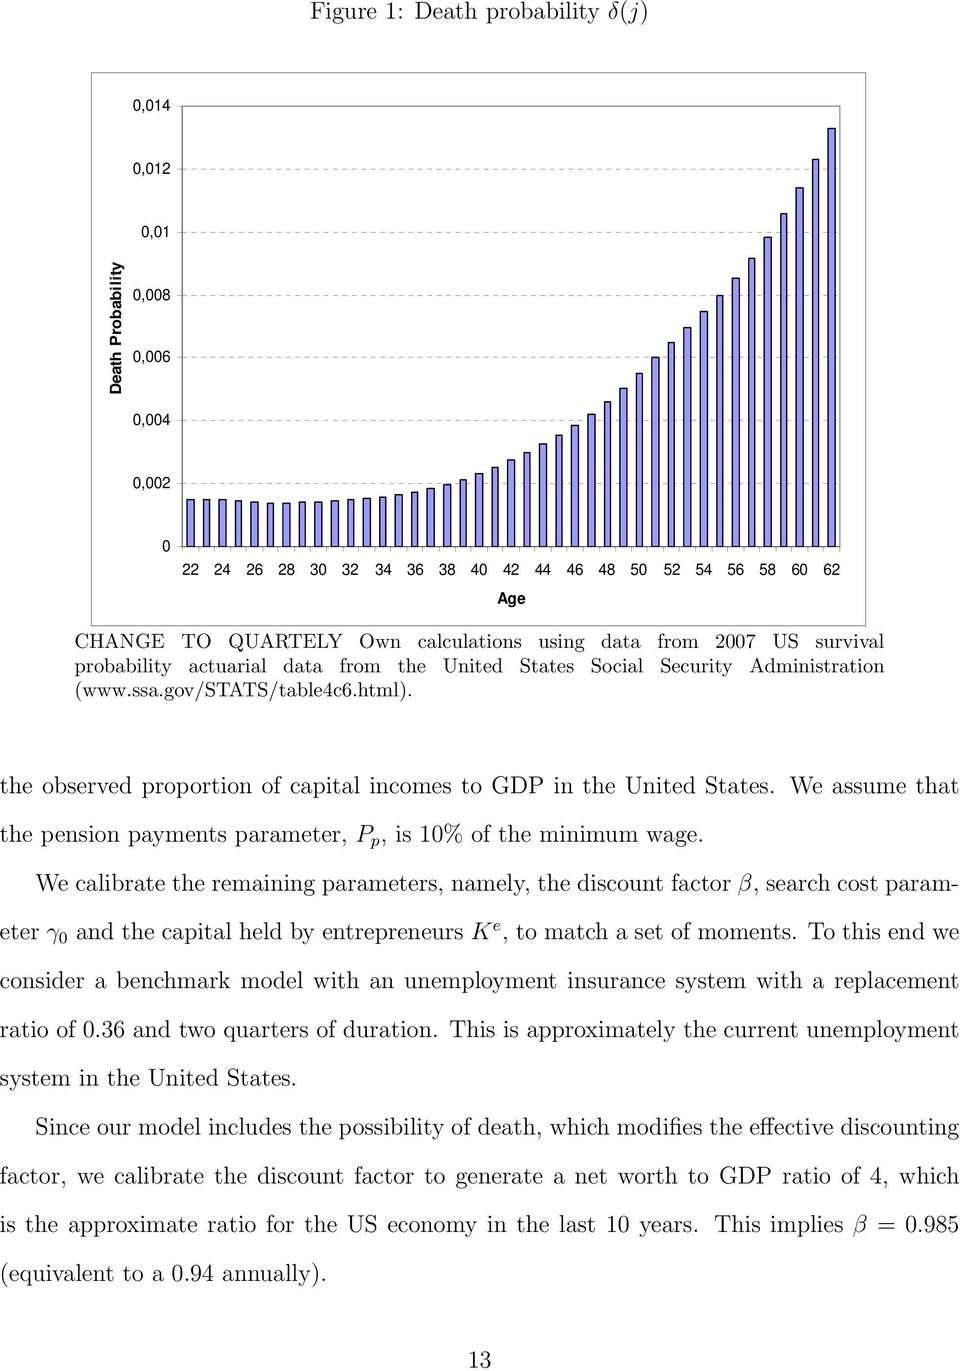 the observed proportion of capital incomes to GDP in the United States. We assume that the pension payments parameter, P p, is 10% of the minimum wage.